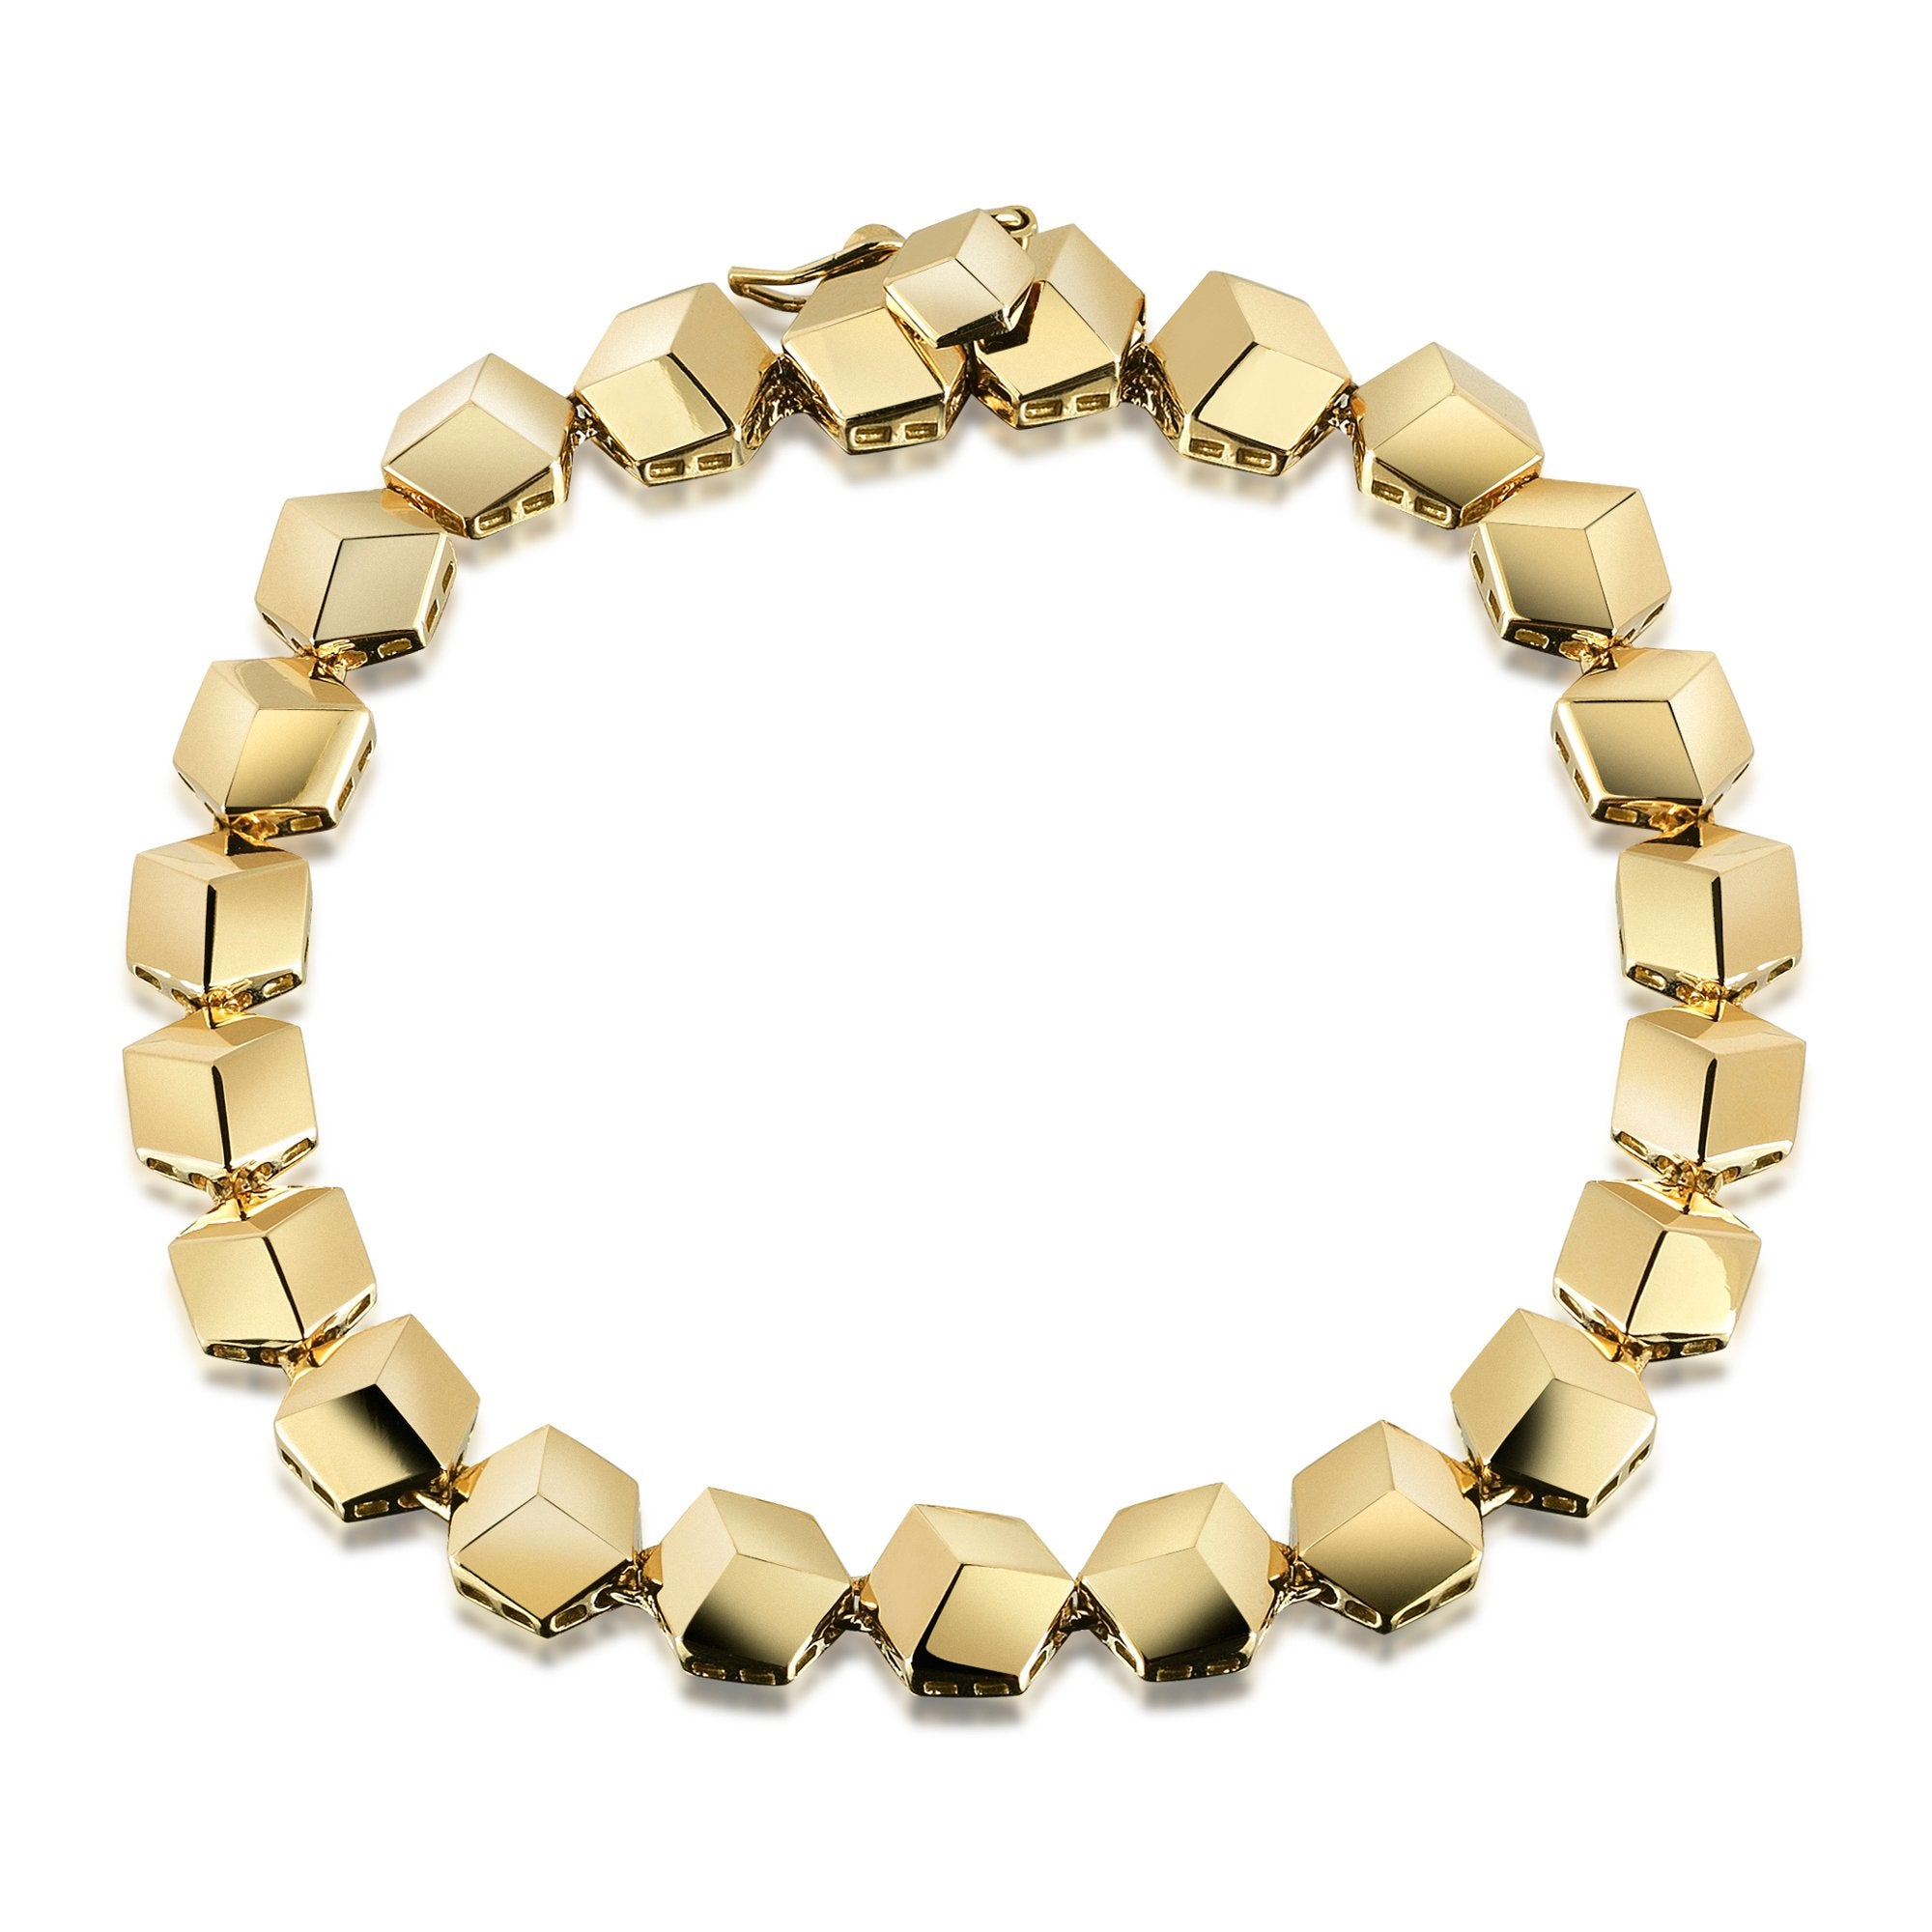 Yellow Gold 'Brillante®' Bracelet, Petite - Paolo Costagli - 1